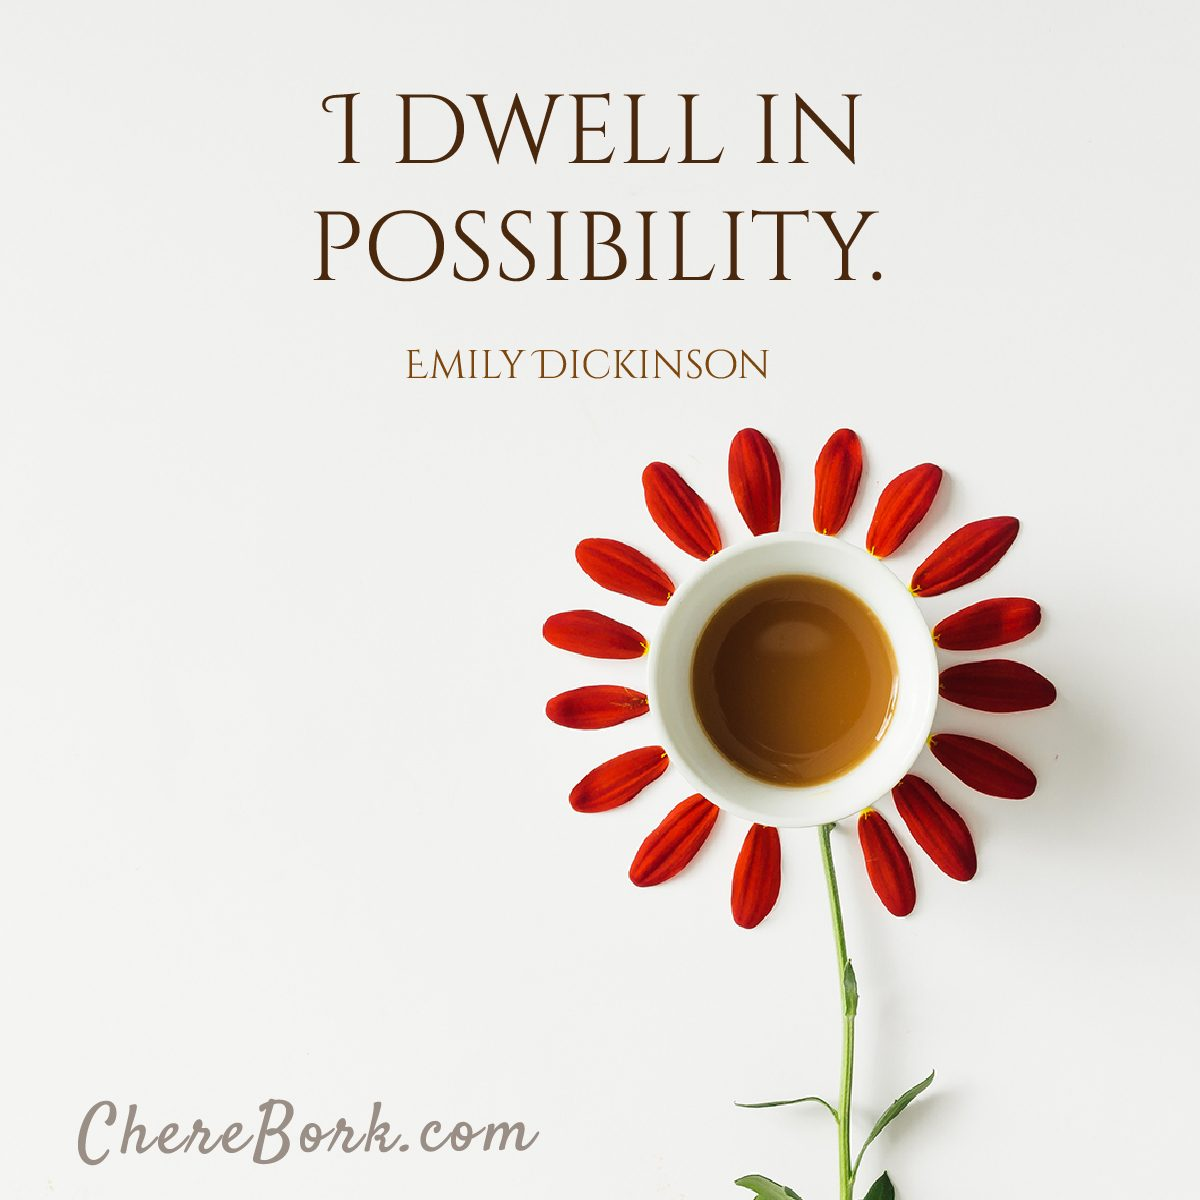 I dwell in possibility. -Emily Dickinson